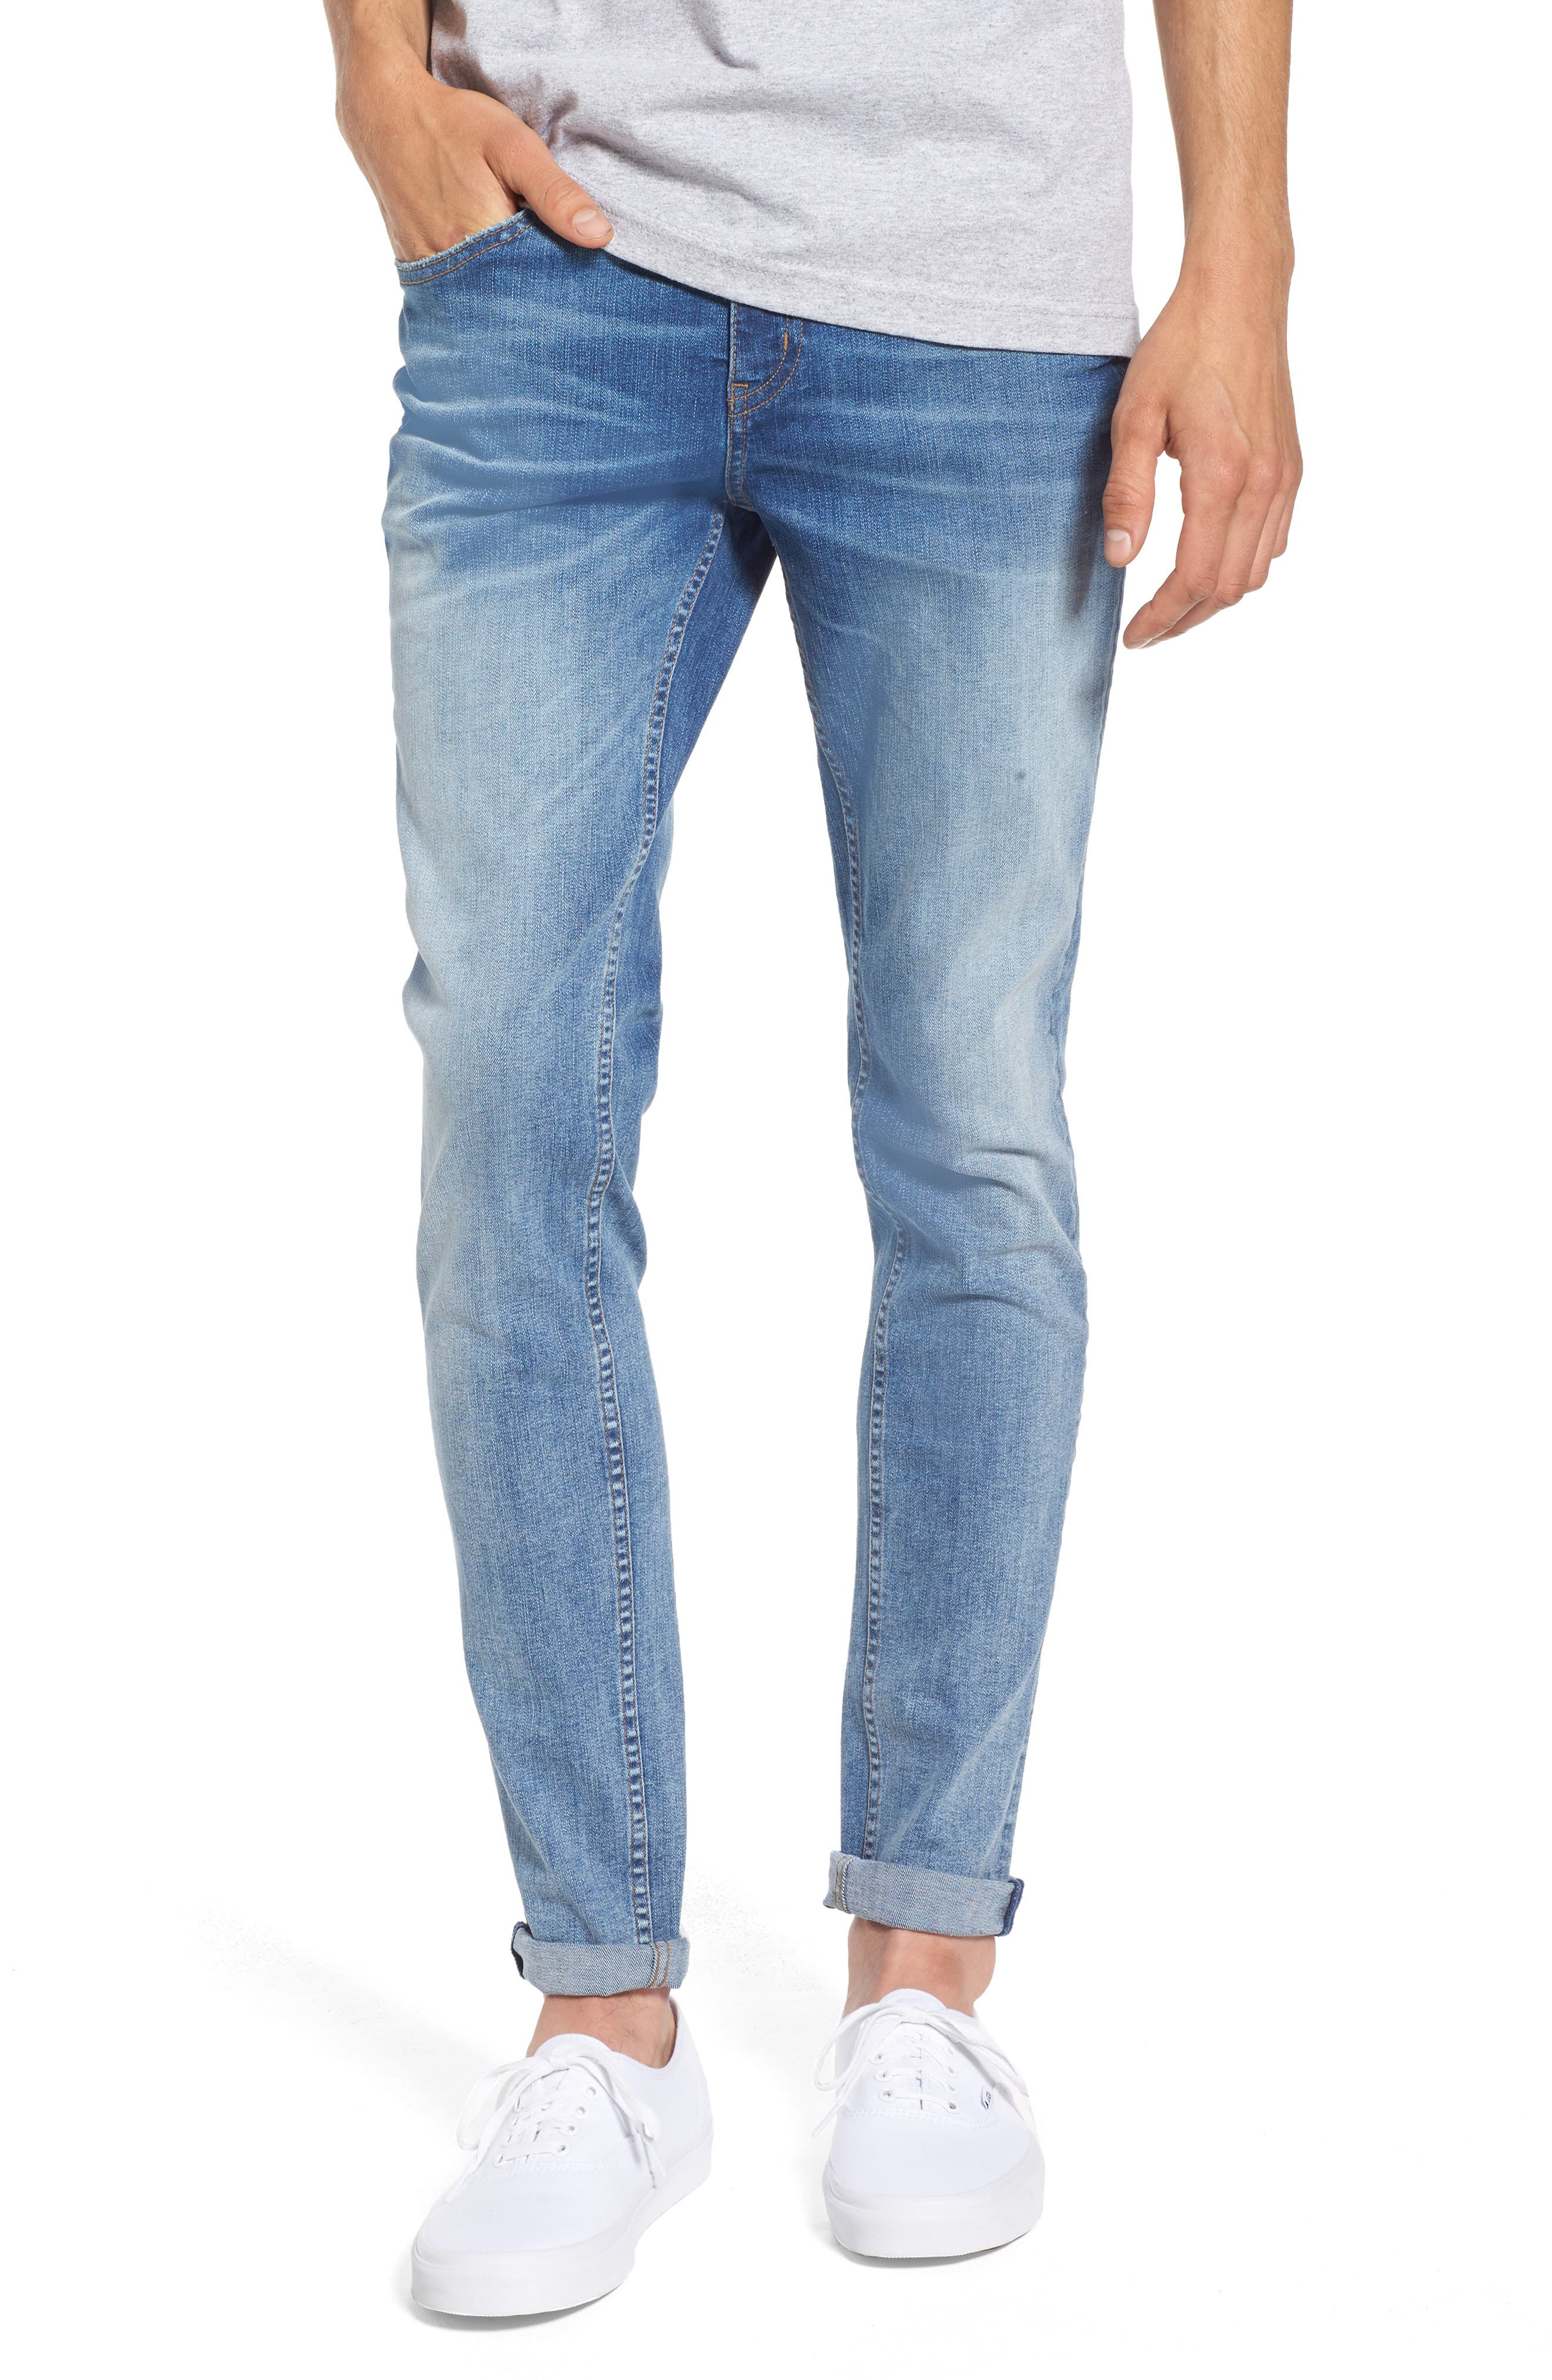 Main Image - Cheap Monday Tight Skinny Fit Jeans (Dug Up Blue)